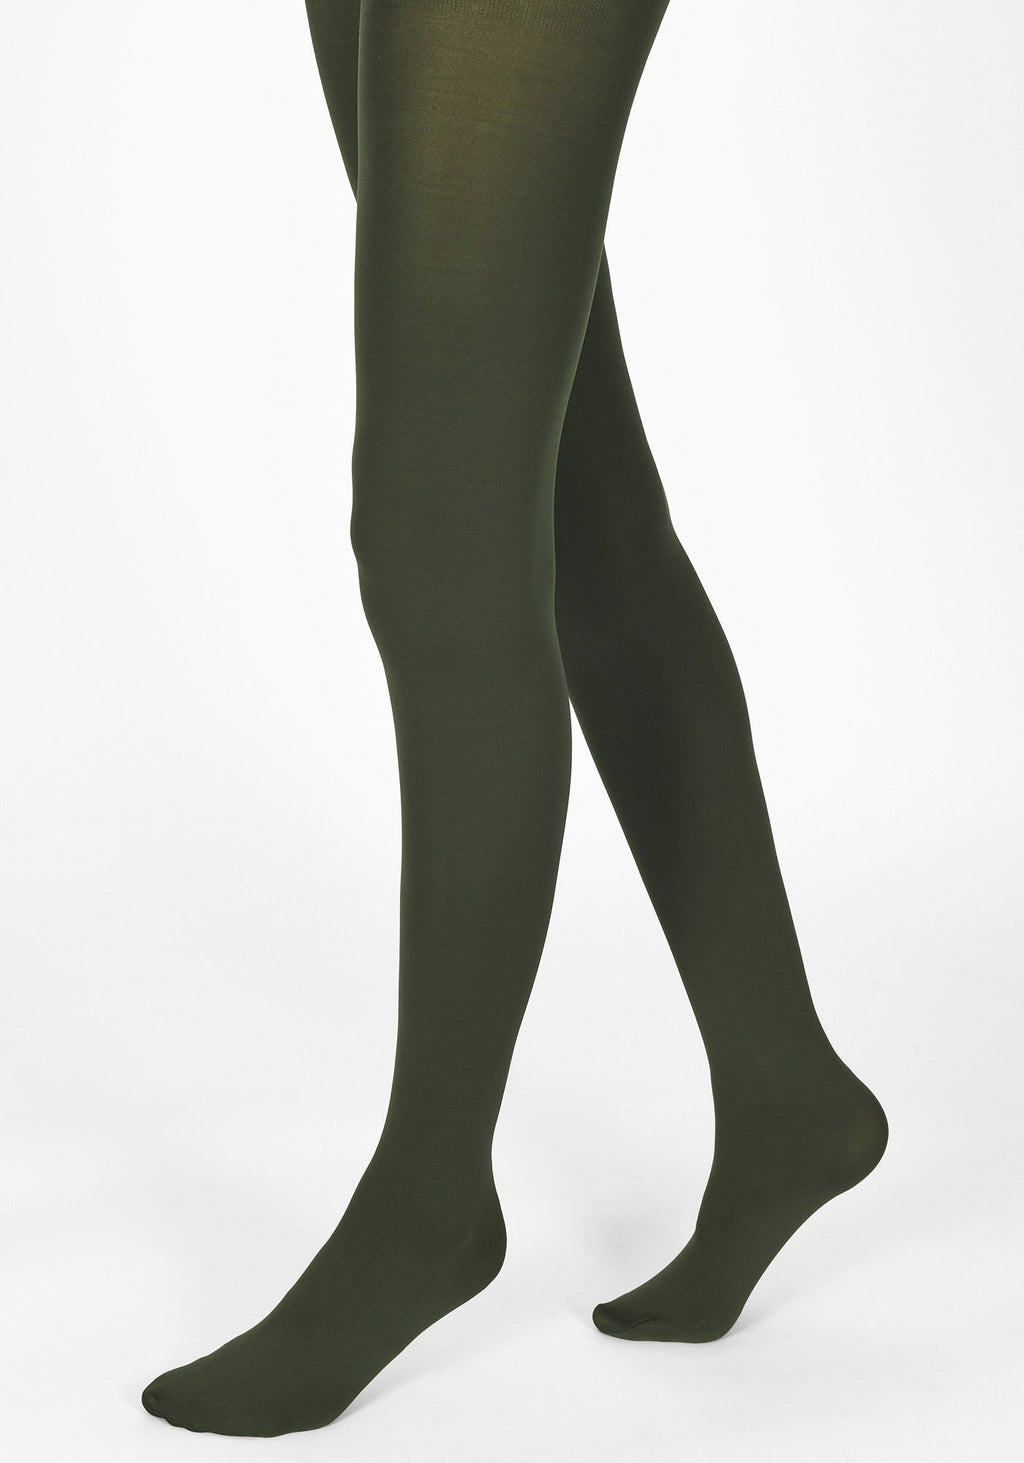 bottle green tights 100 denier 1